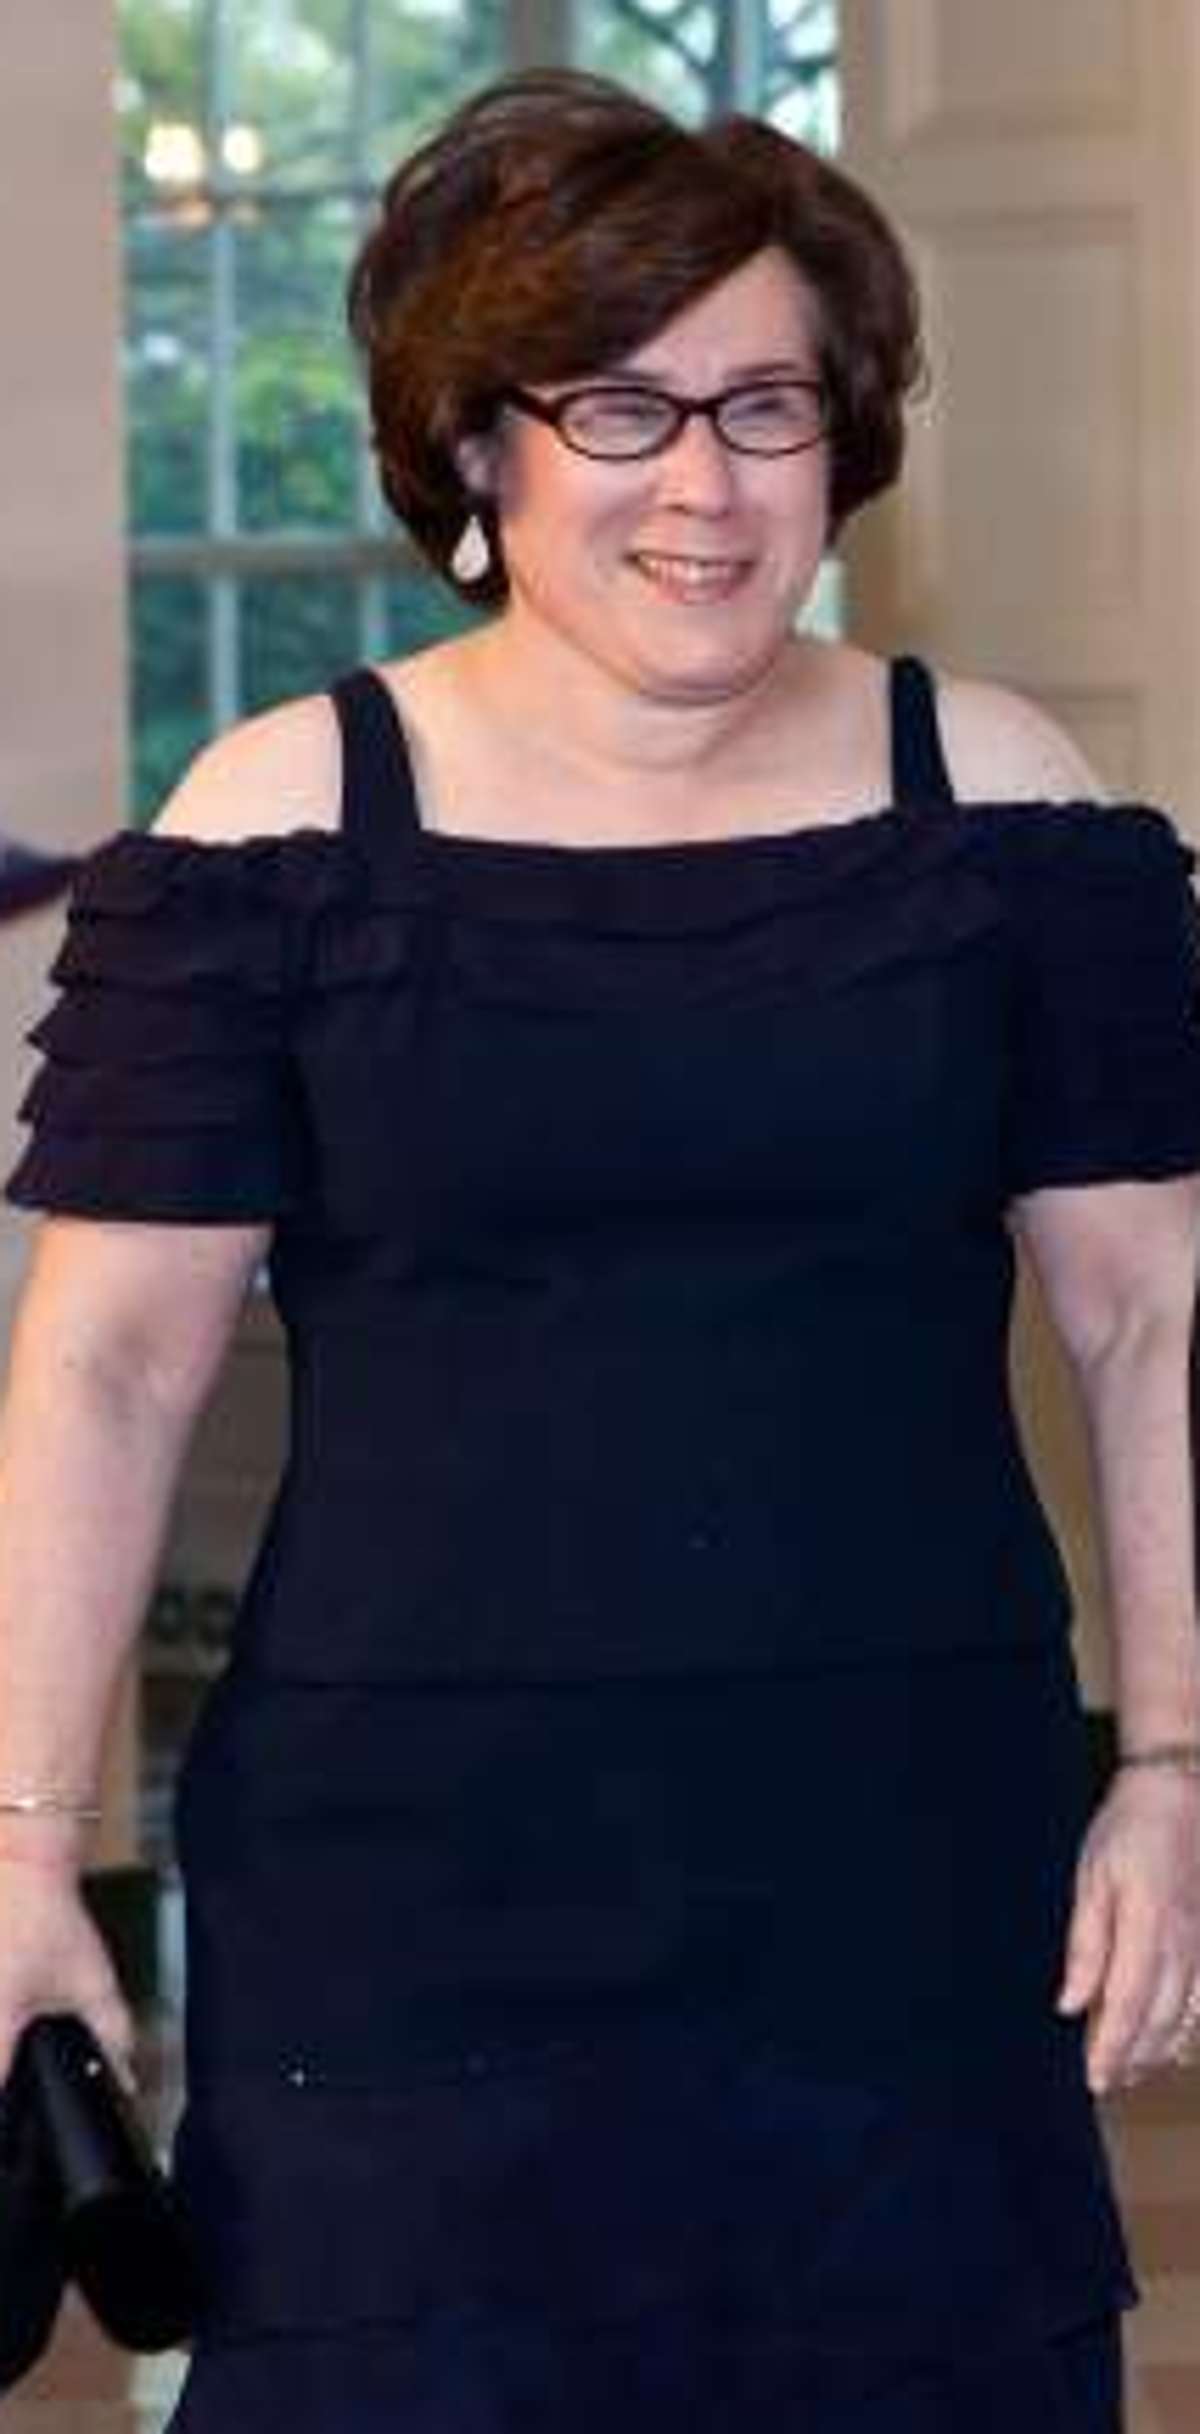 Chuck Schumer S Wife Wiki 5 Facts To Know About Iris Weinshall Iris weinshall is chuck schumer's wife and is the chief operating officer of the new york public librarycredit: chuck schumer s wife wiki 5 facts to